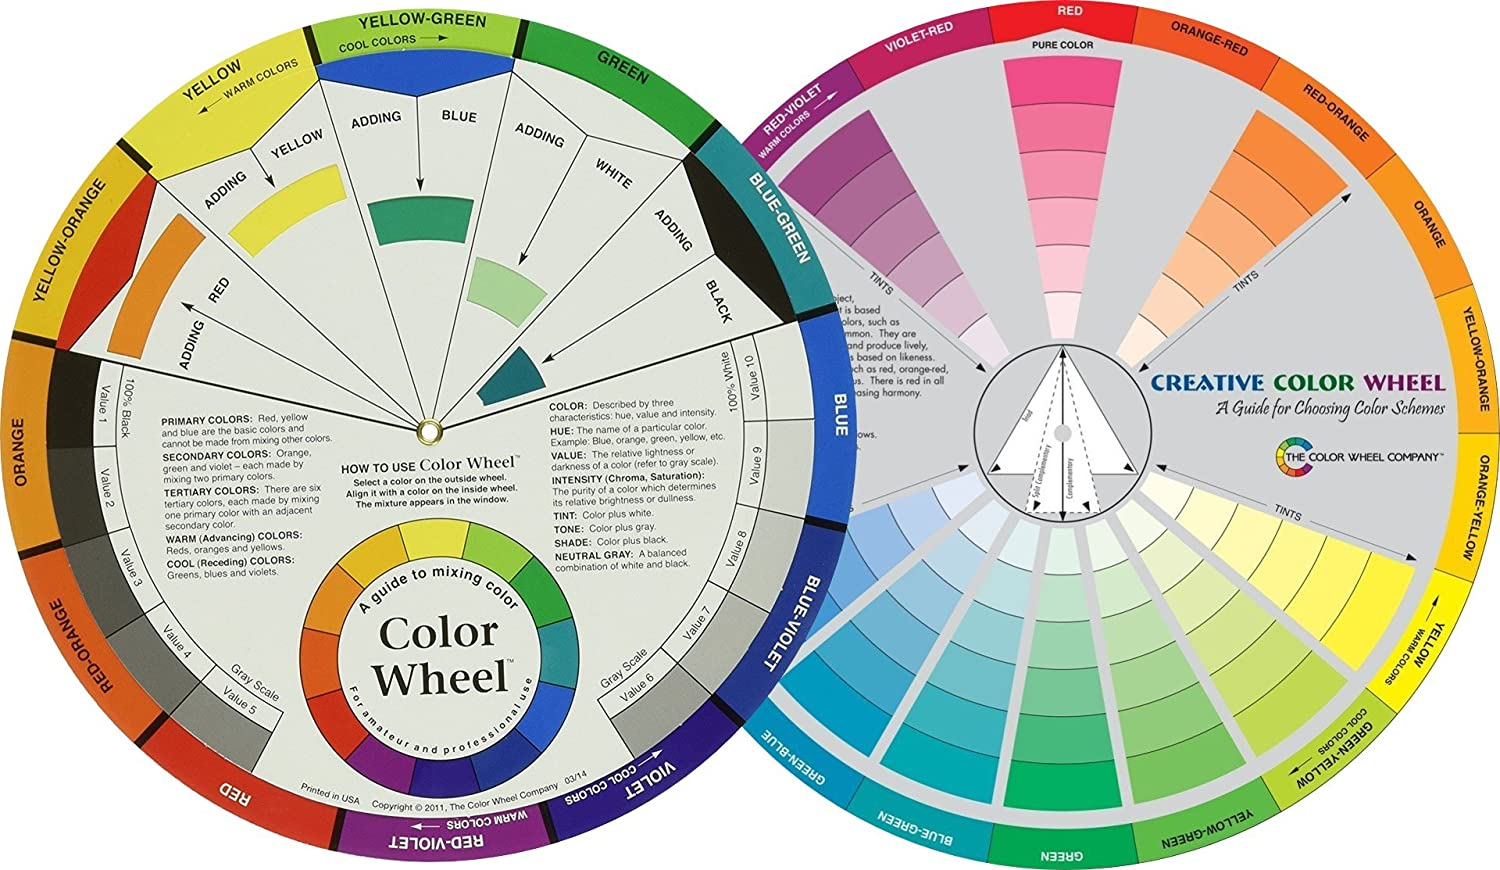 "Mixing Color Wheels for the Artist (9-1/4"") With a Creative Color Wheel (9.25 inch) circle with different colored sectors used to show the relationship between colors."